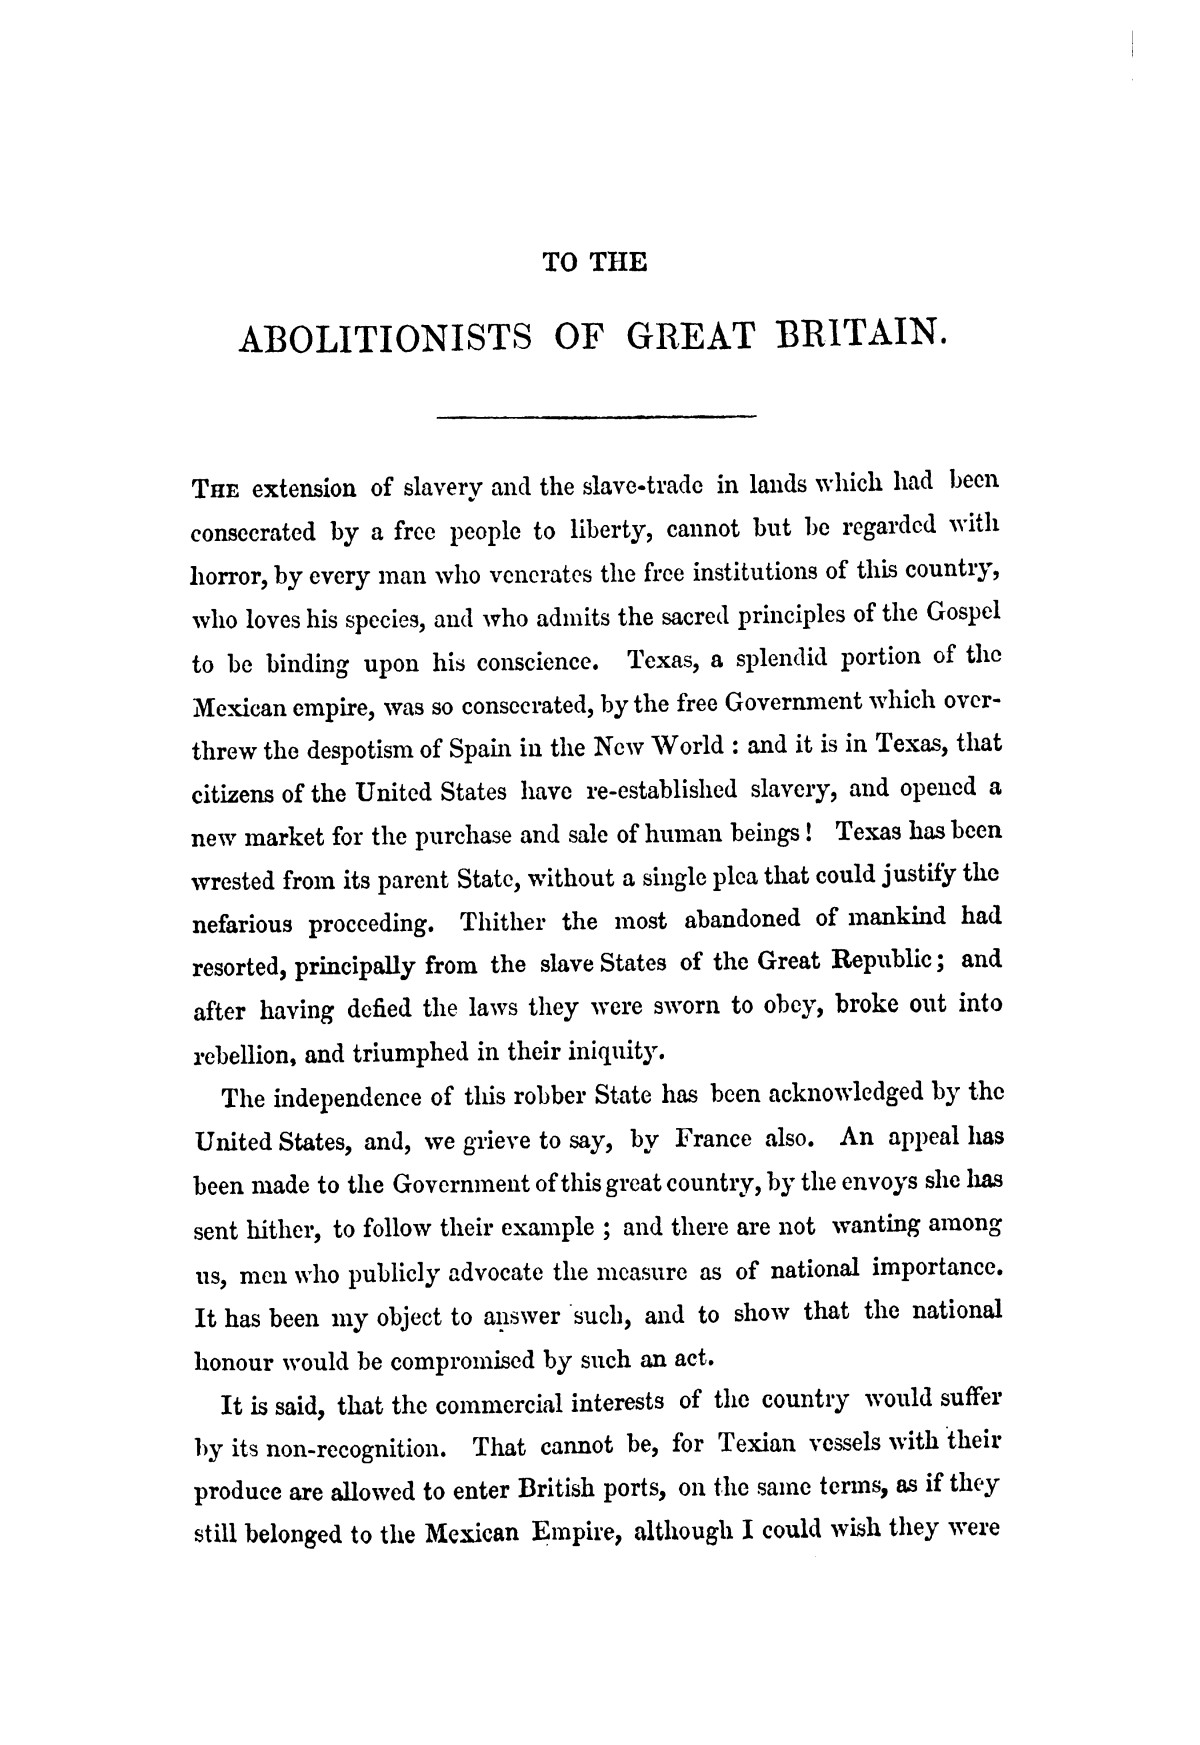 Texas, its claims to be recognised as an independent power by Great Britain : examined in a series of letters                                                                                                      [Sequence #]: 5 of 58